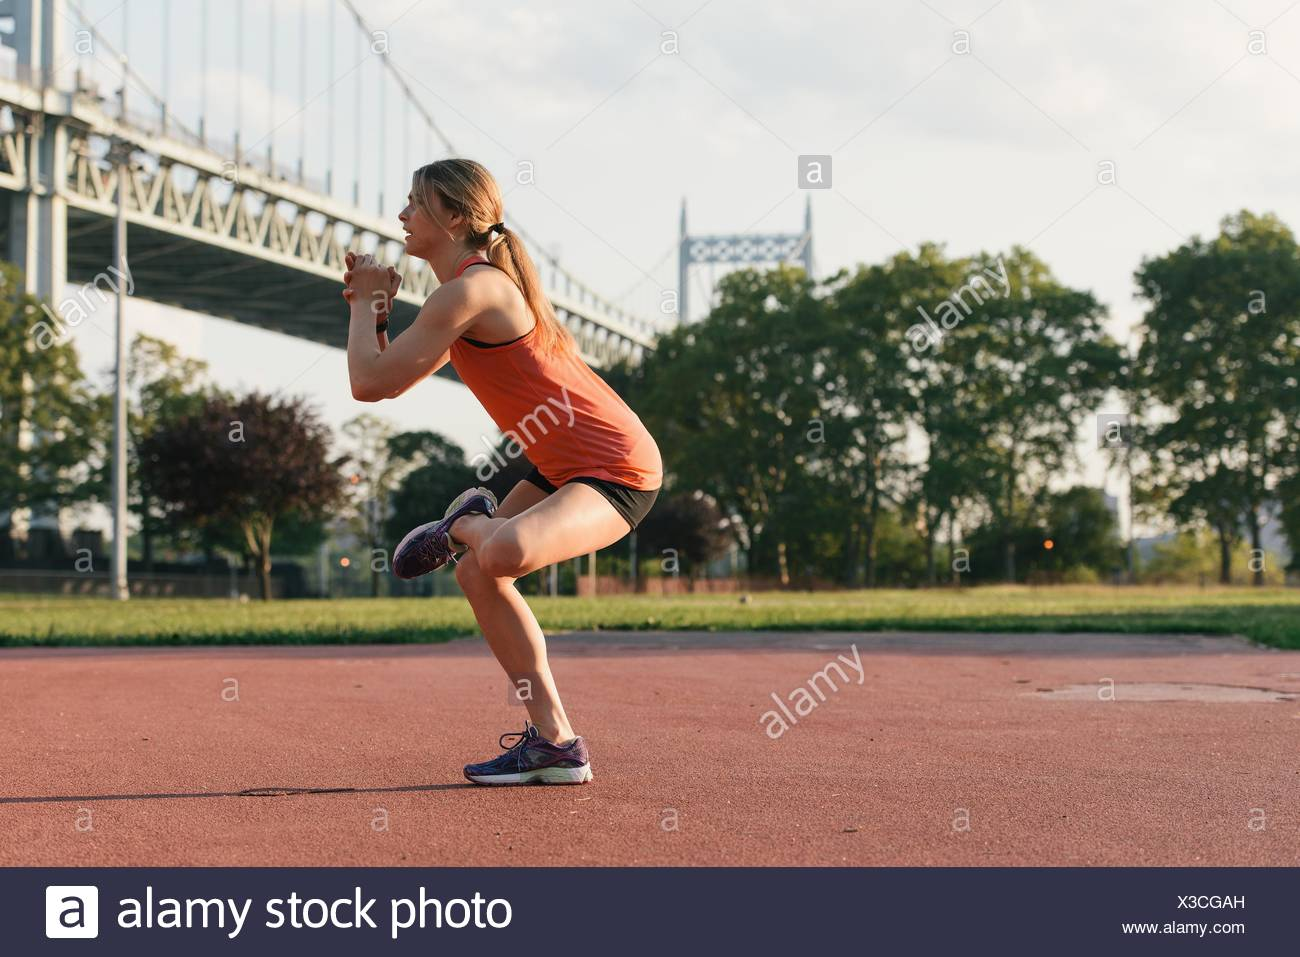 Young woman working out, stretching, outdoors - Stock Image